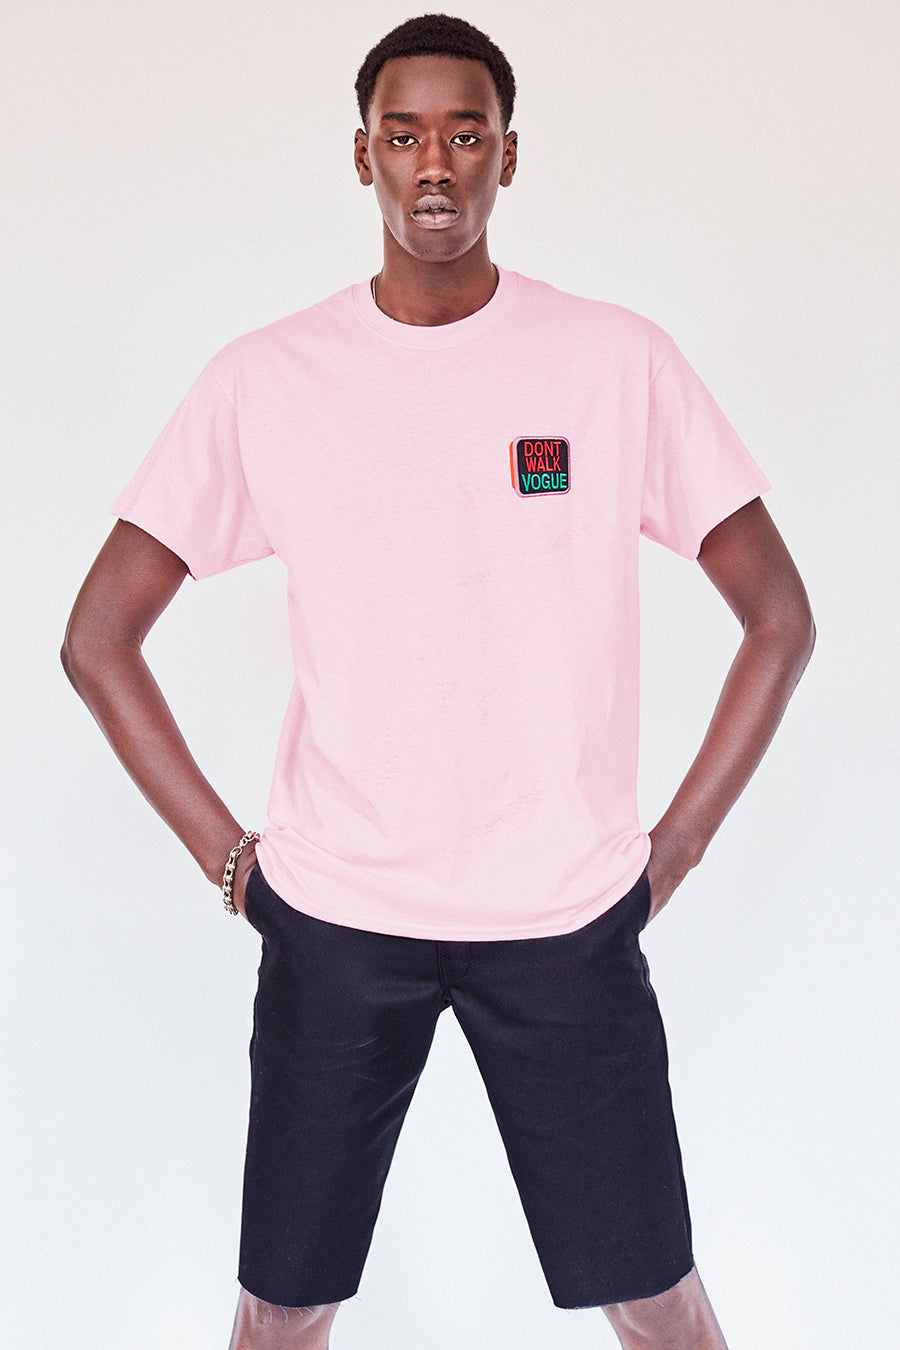 Brand New. Pride Month 2020- New York Label: Your new work from home outfit Shop the Dont Walk Vogue pale pink T-Shirt featuring chest embroidery inspired by old school Walk/Dont Walk crosswalk signs on the front and St. Marks Couture New York logo on the back. Hand silkscreen printed in New York with love.